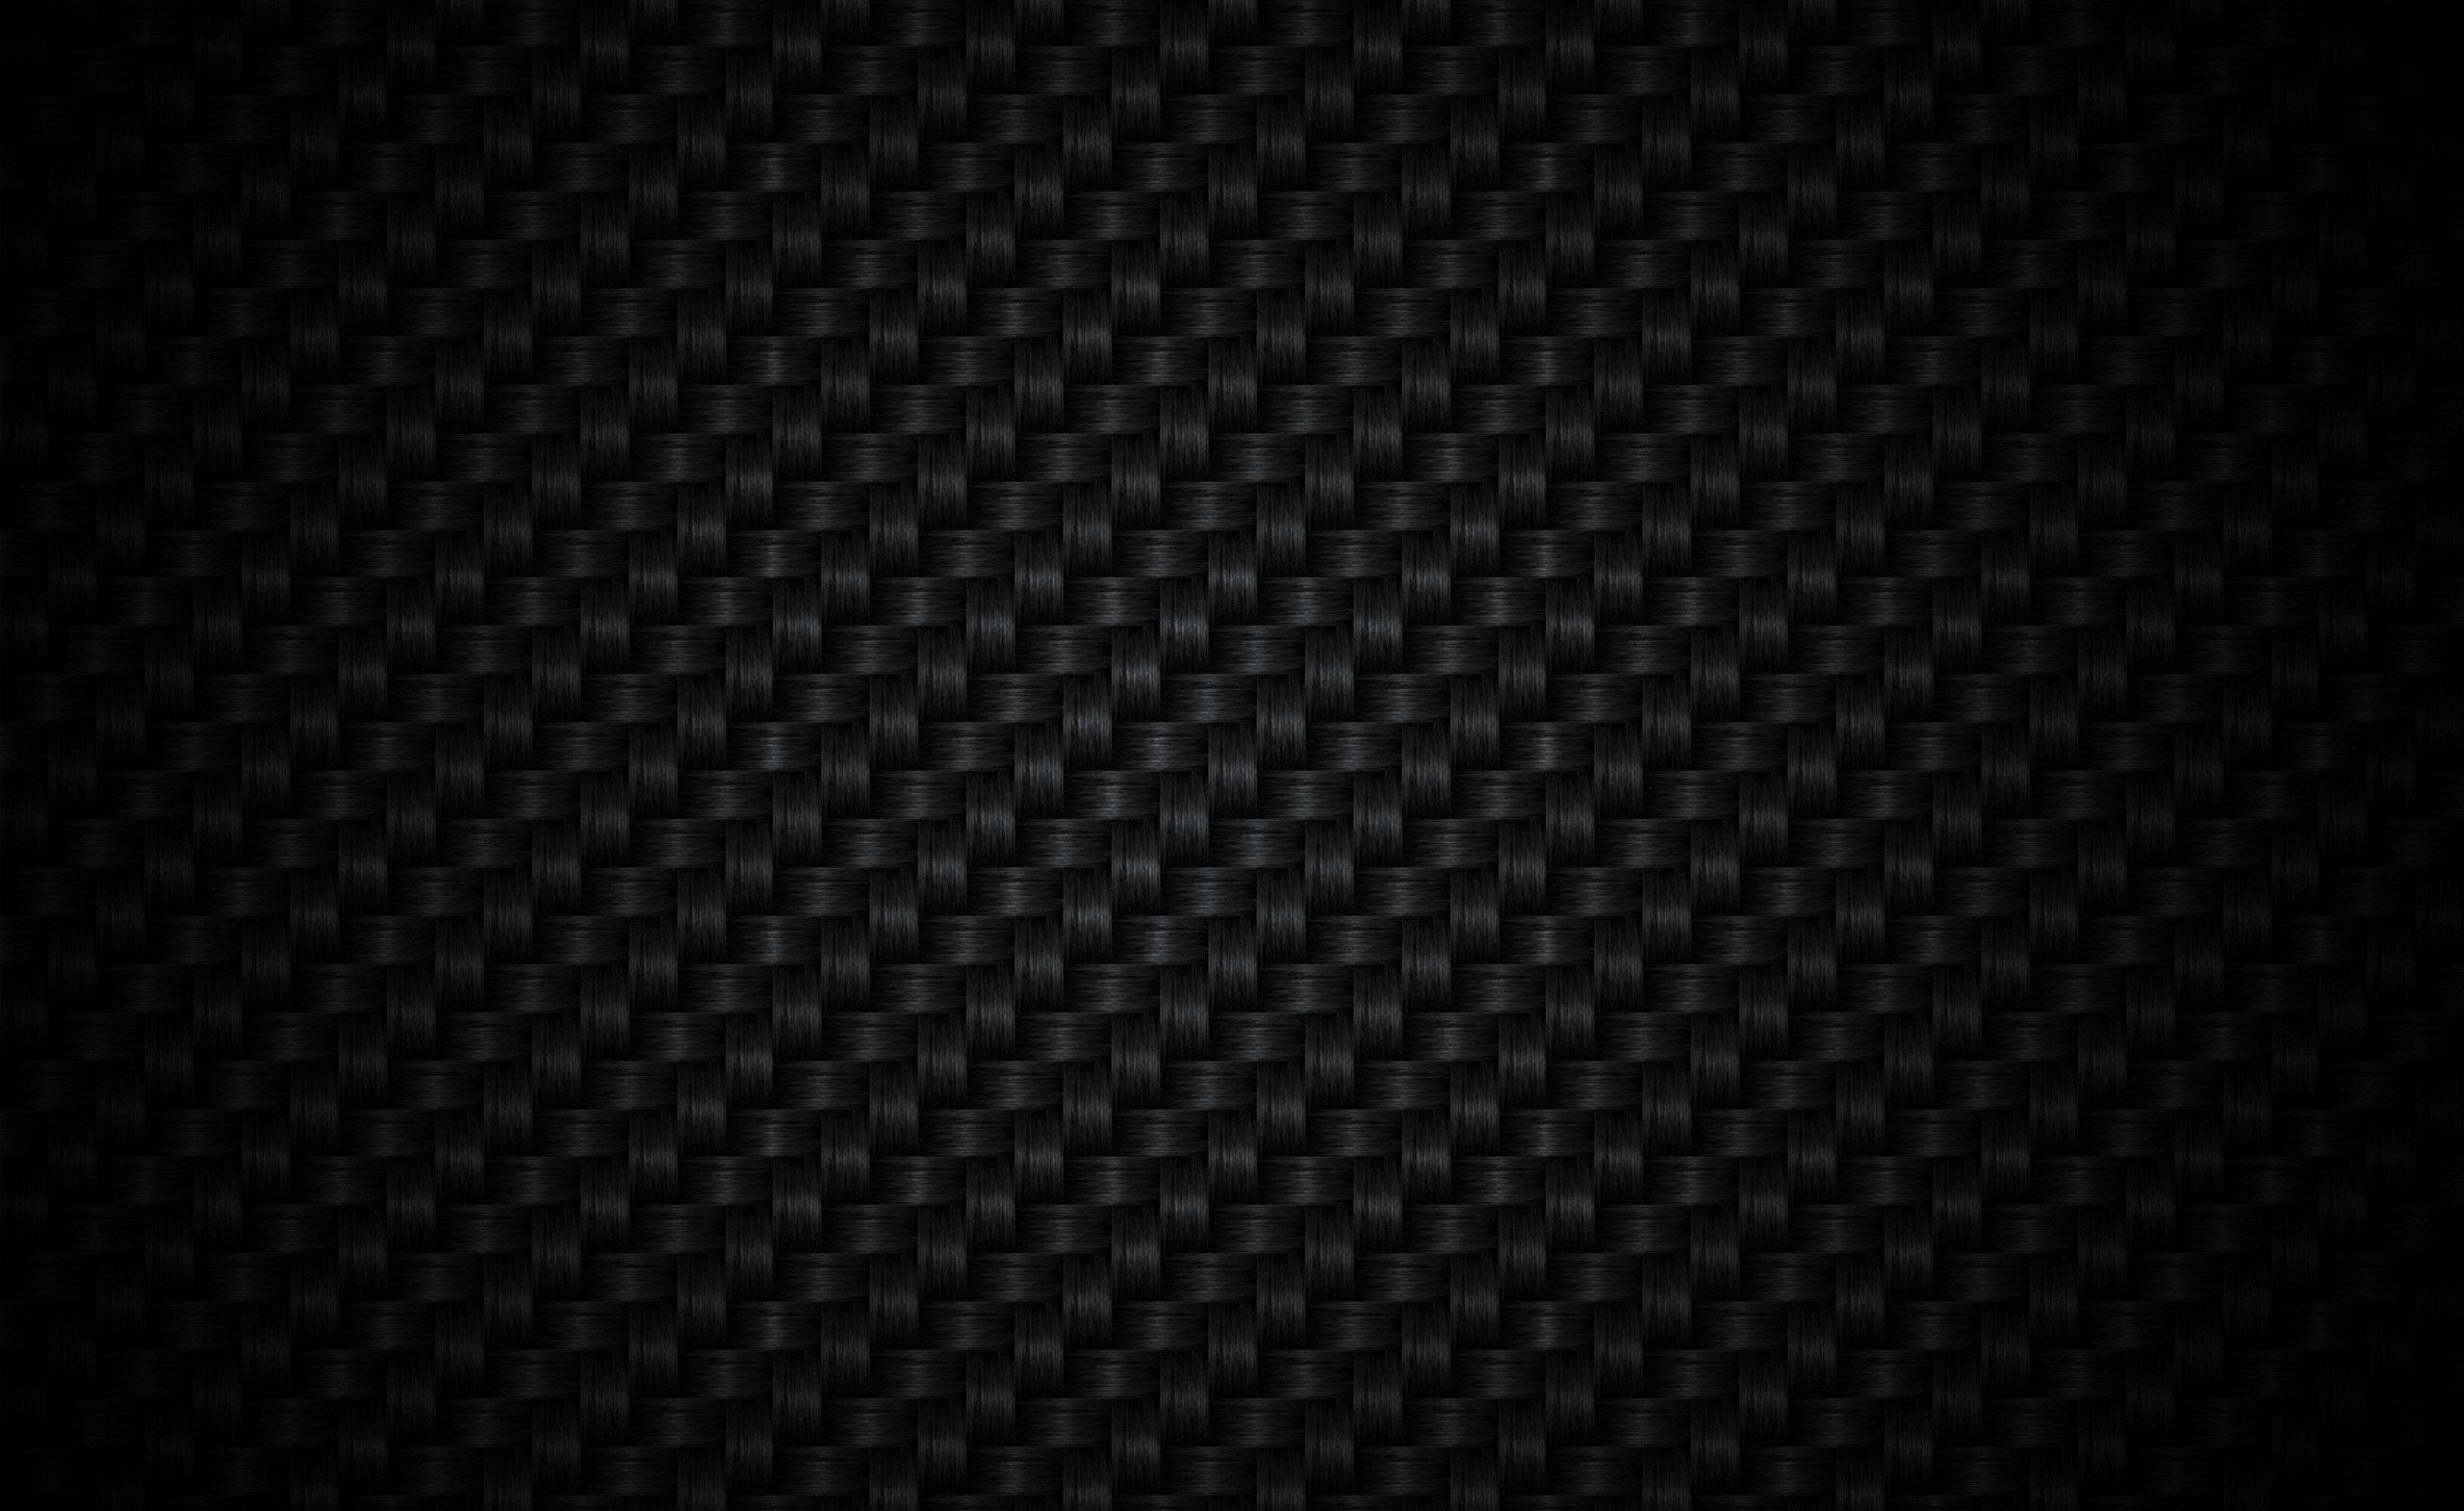 Download Black Texture Wallpaper 2560x1570 Full HD Wallpapers 2560x1570